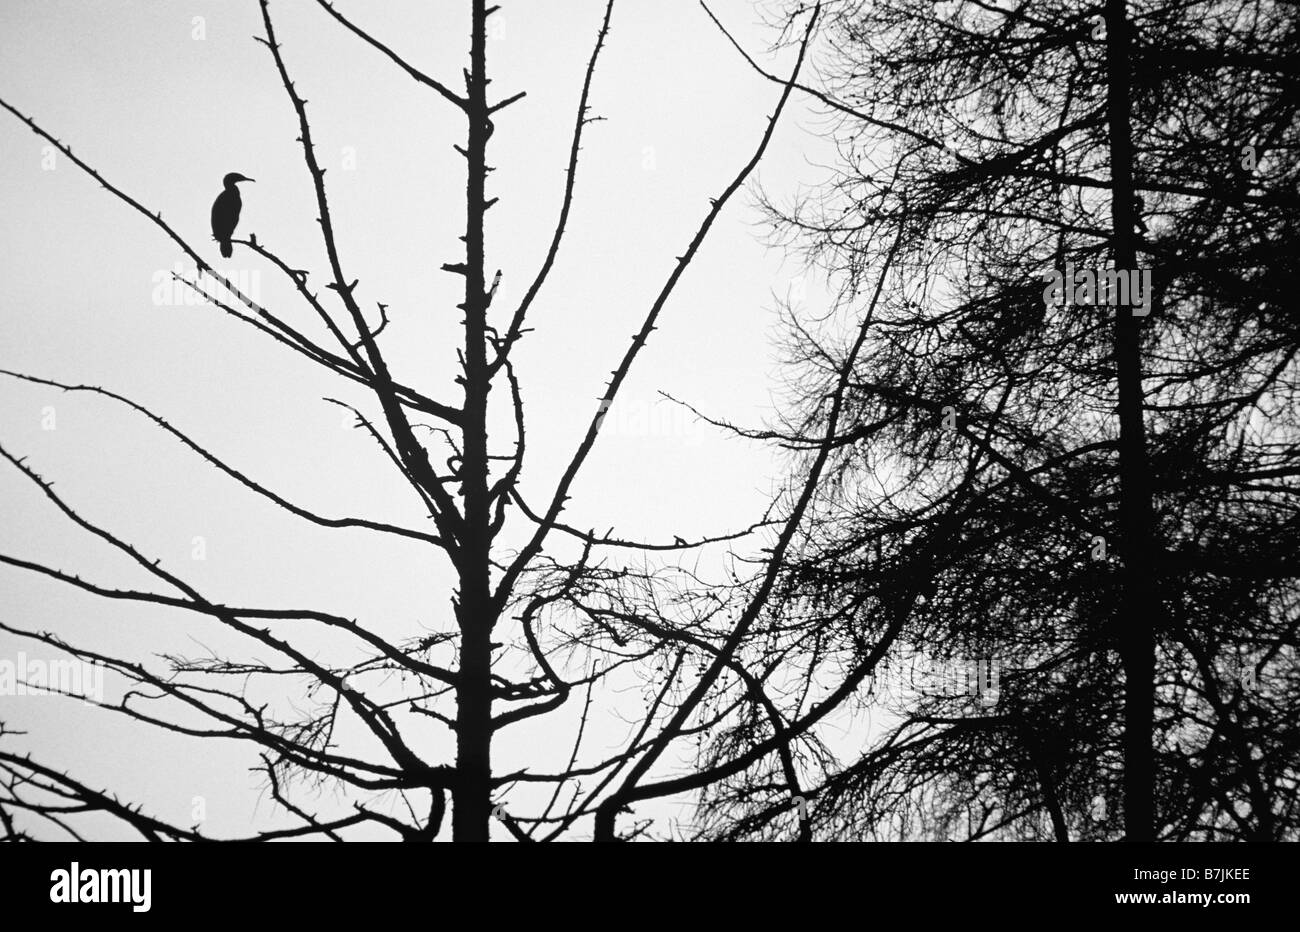 A cormorant perches high in a tree - Stock Image